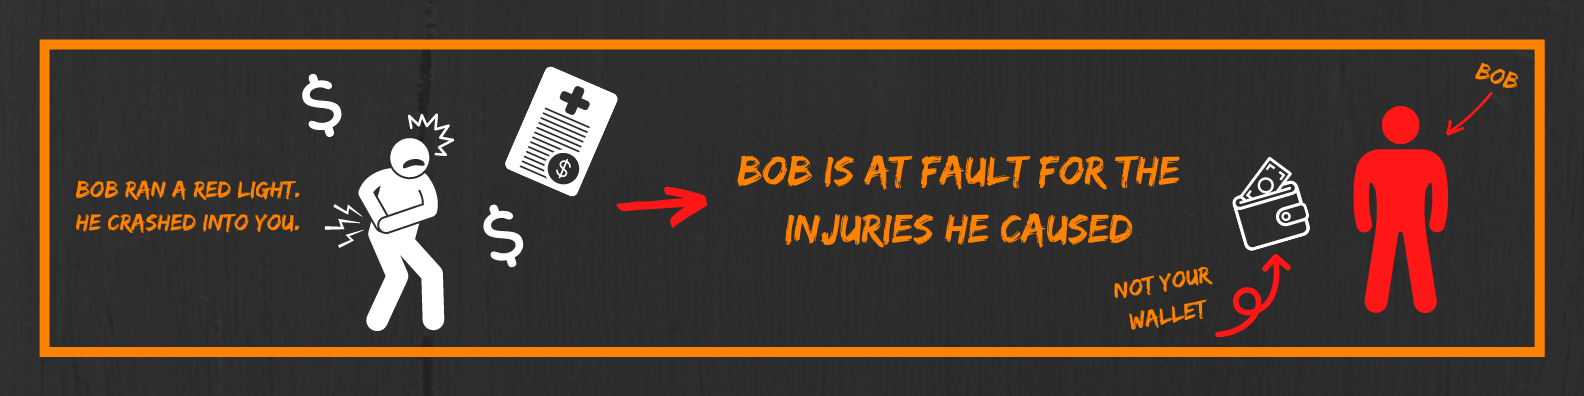 Decorative image about who is at fault for personal injury cases